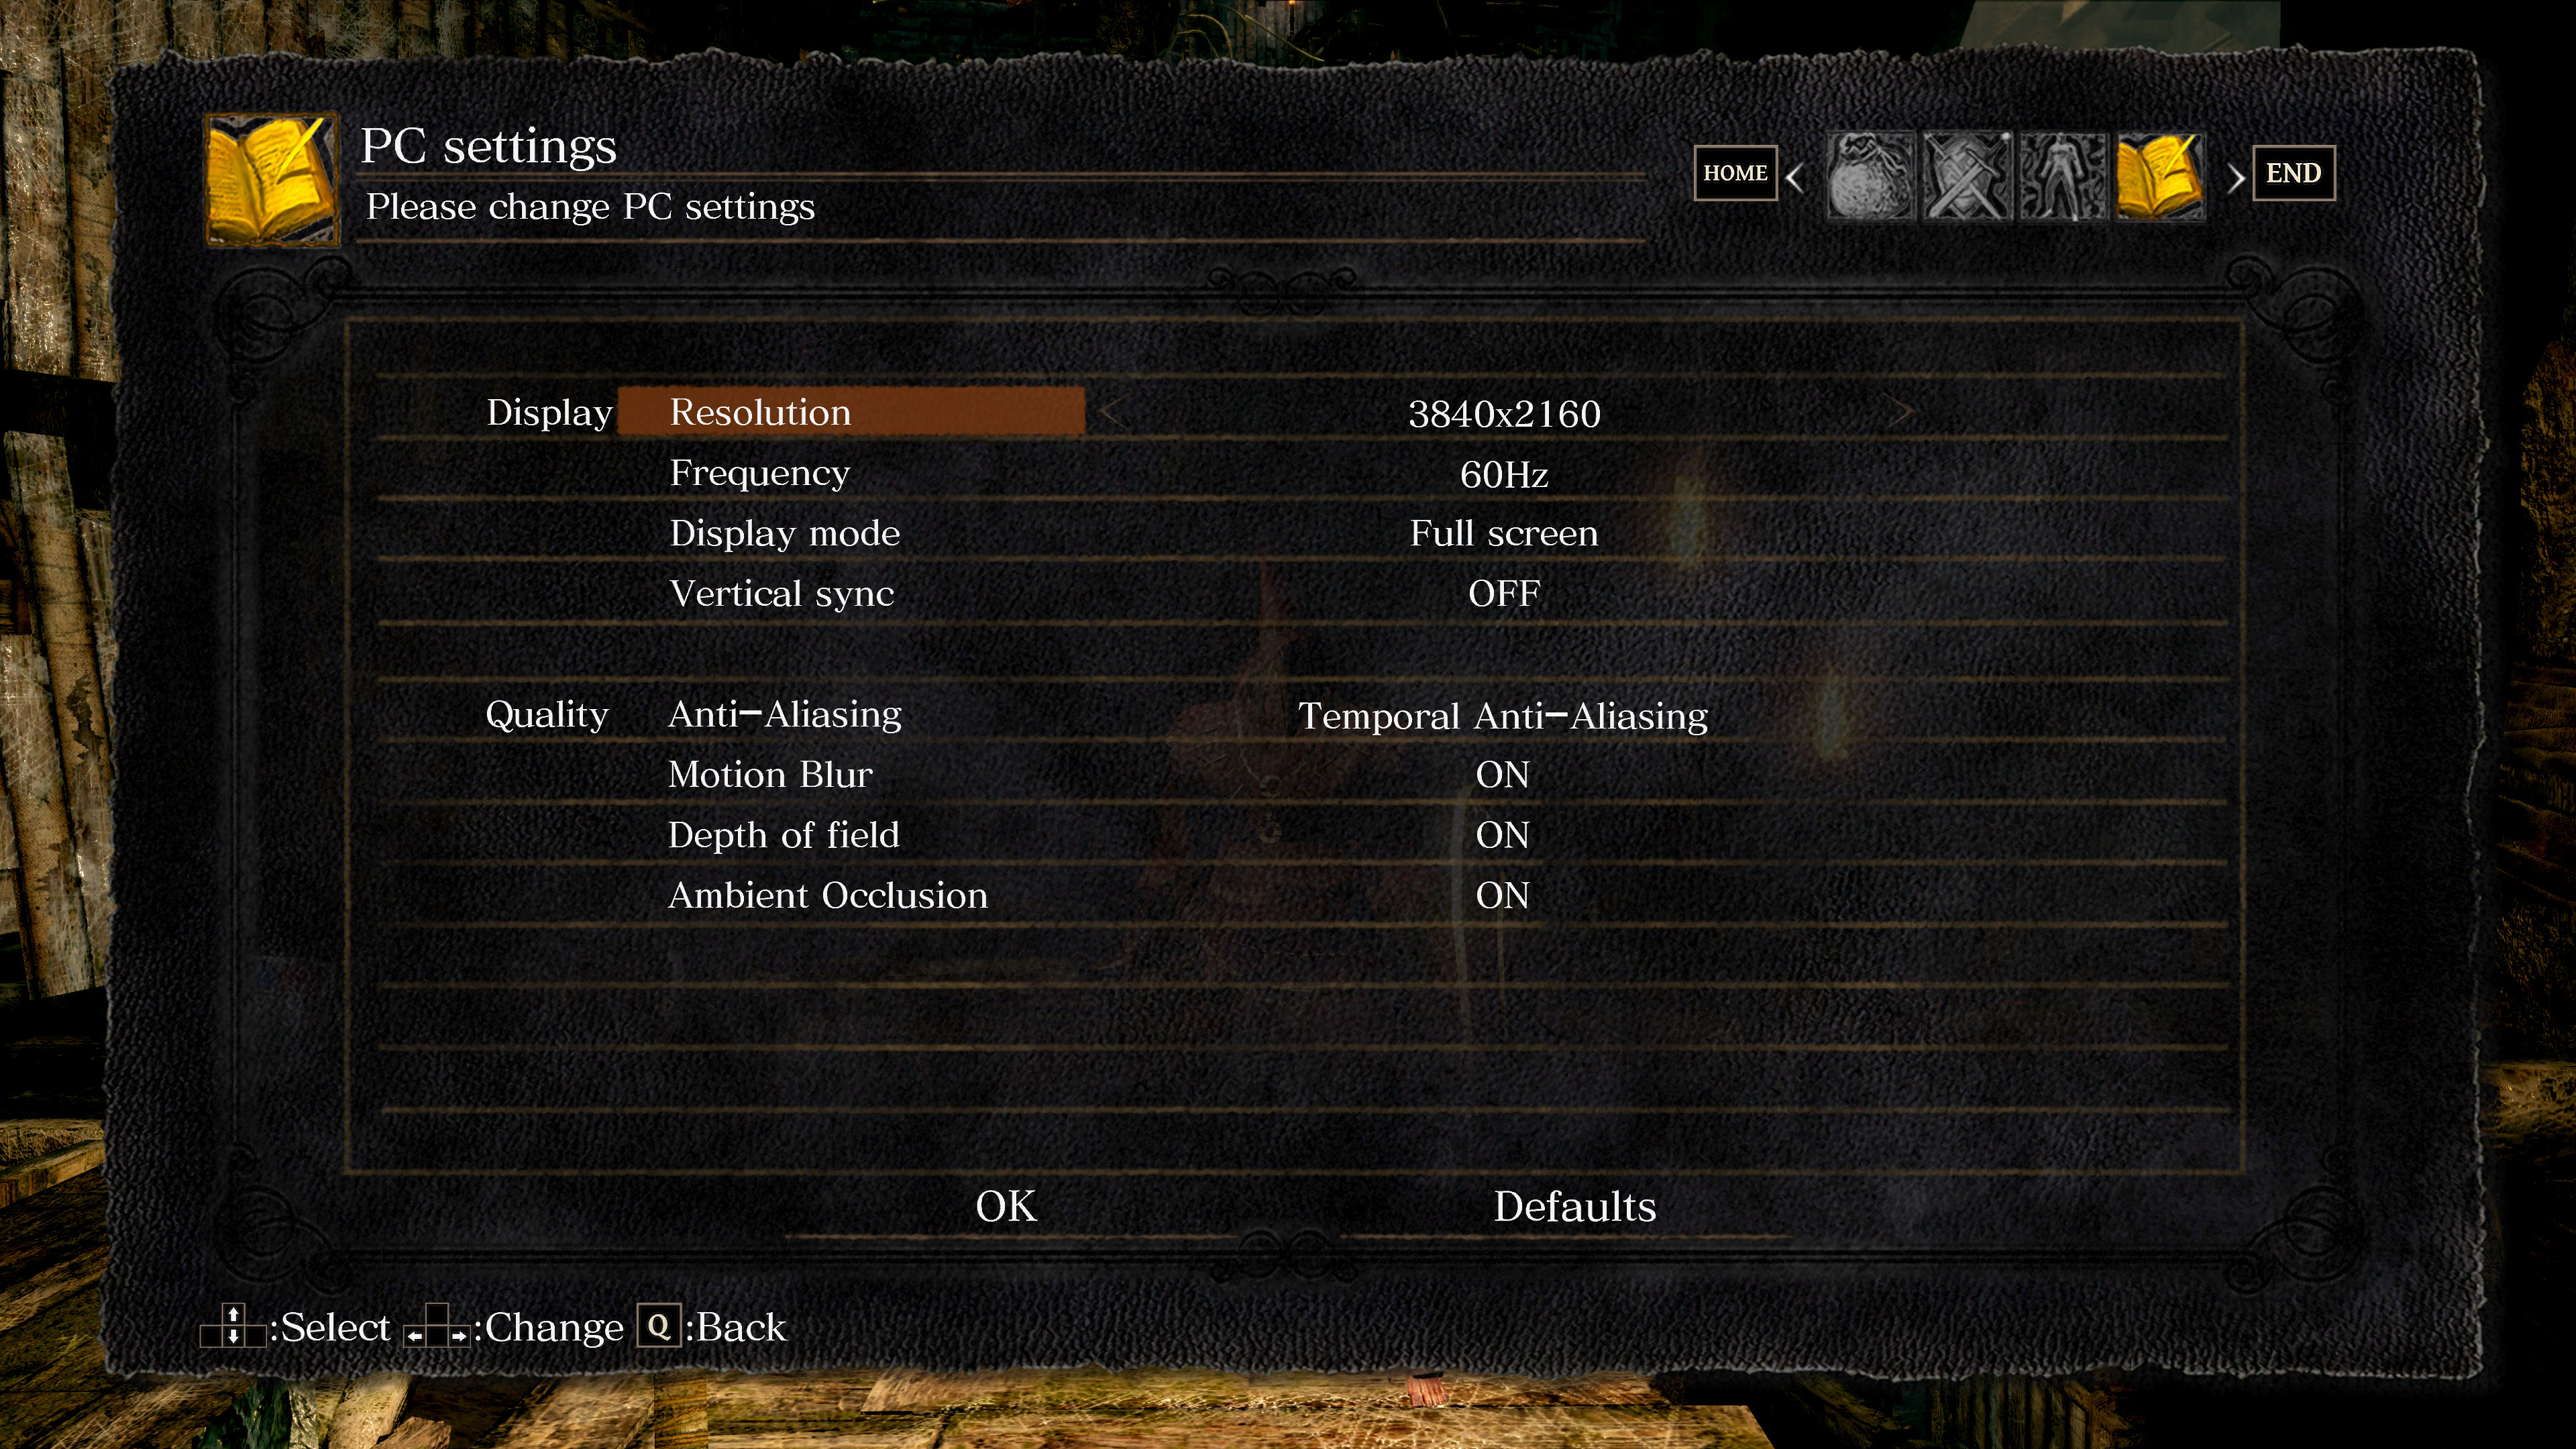 Dark Souls Remastered PC requirements: 60 fps on any